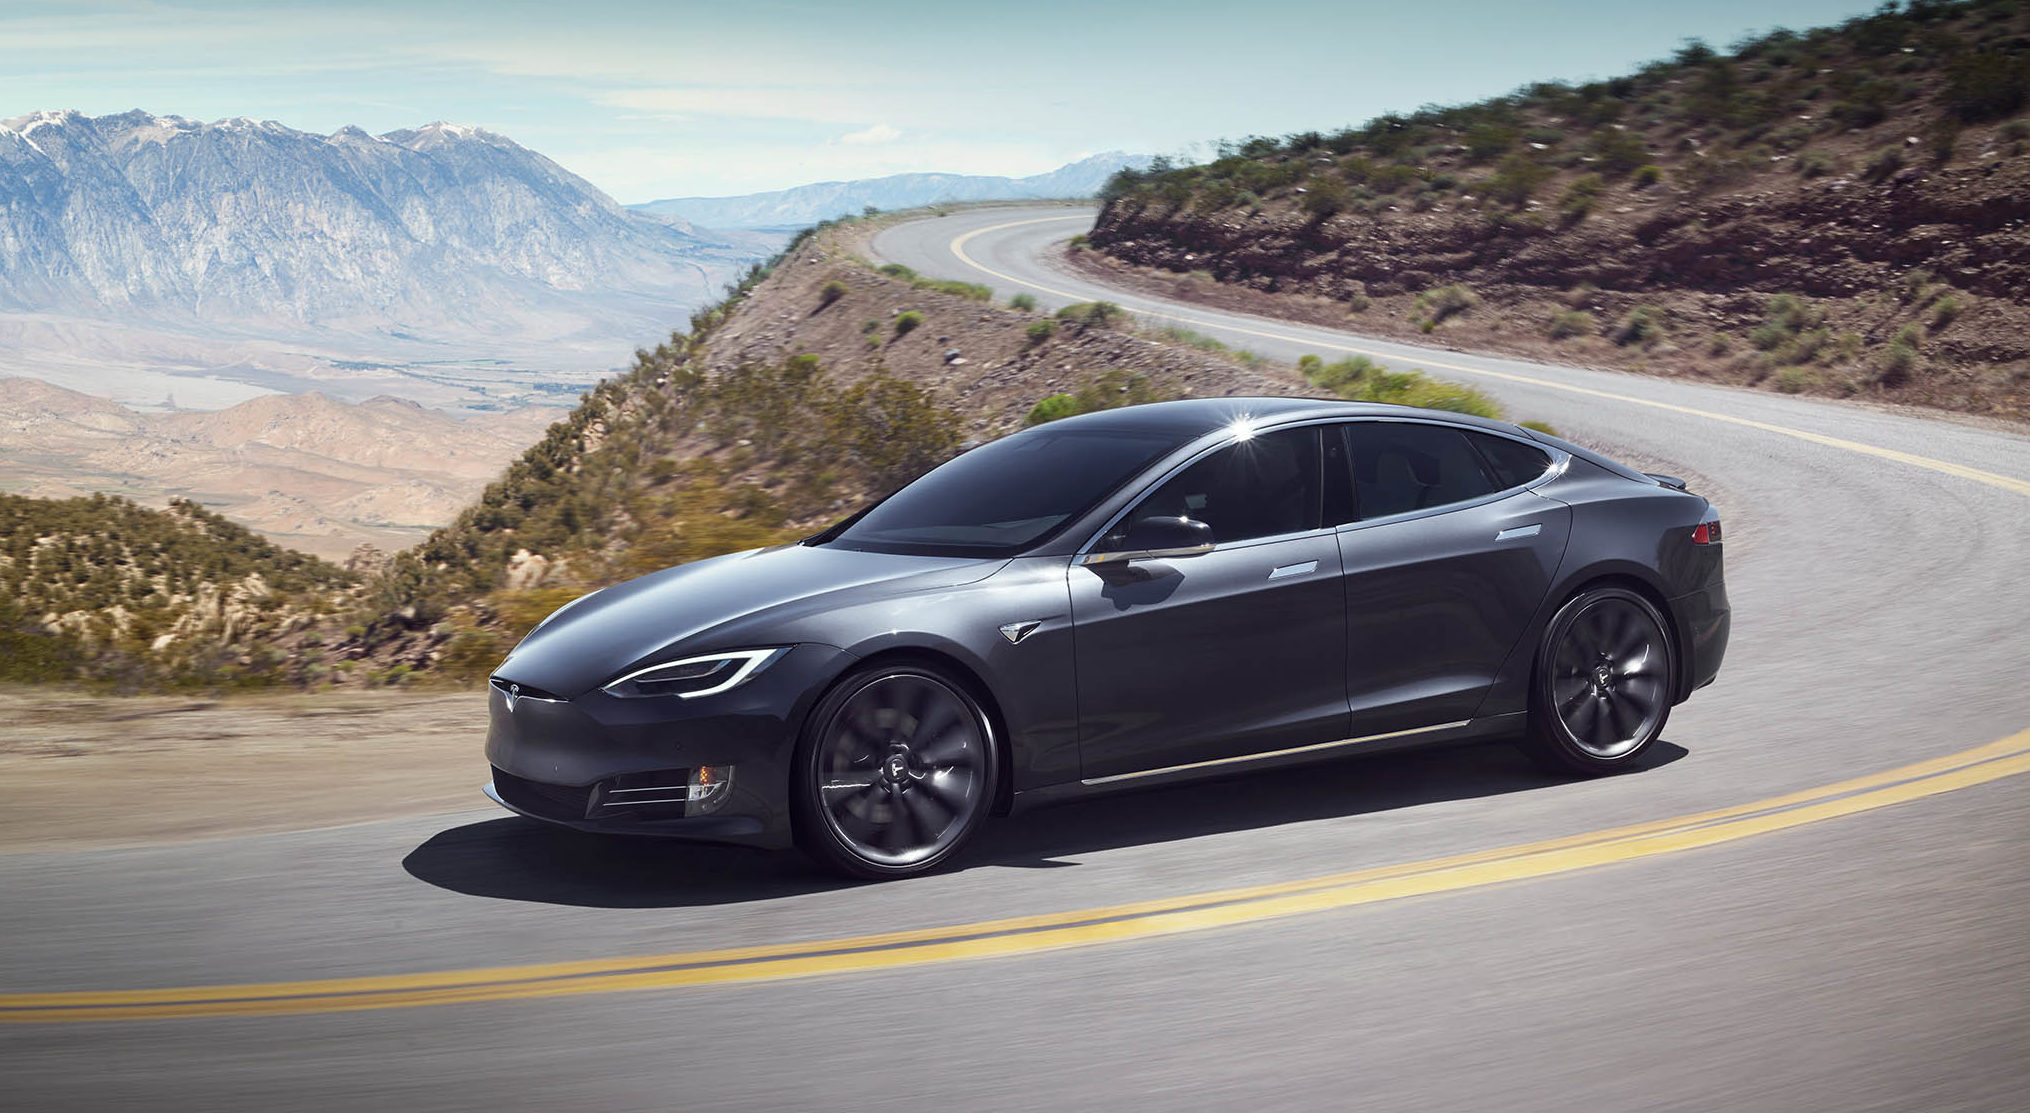 Tesla Model S Price: How much does it really cost - 1redDrop